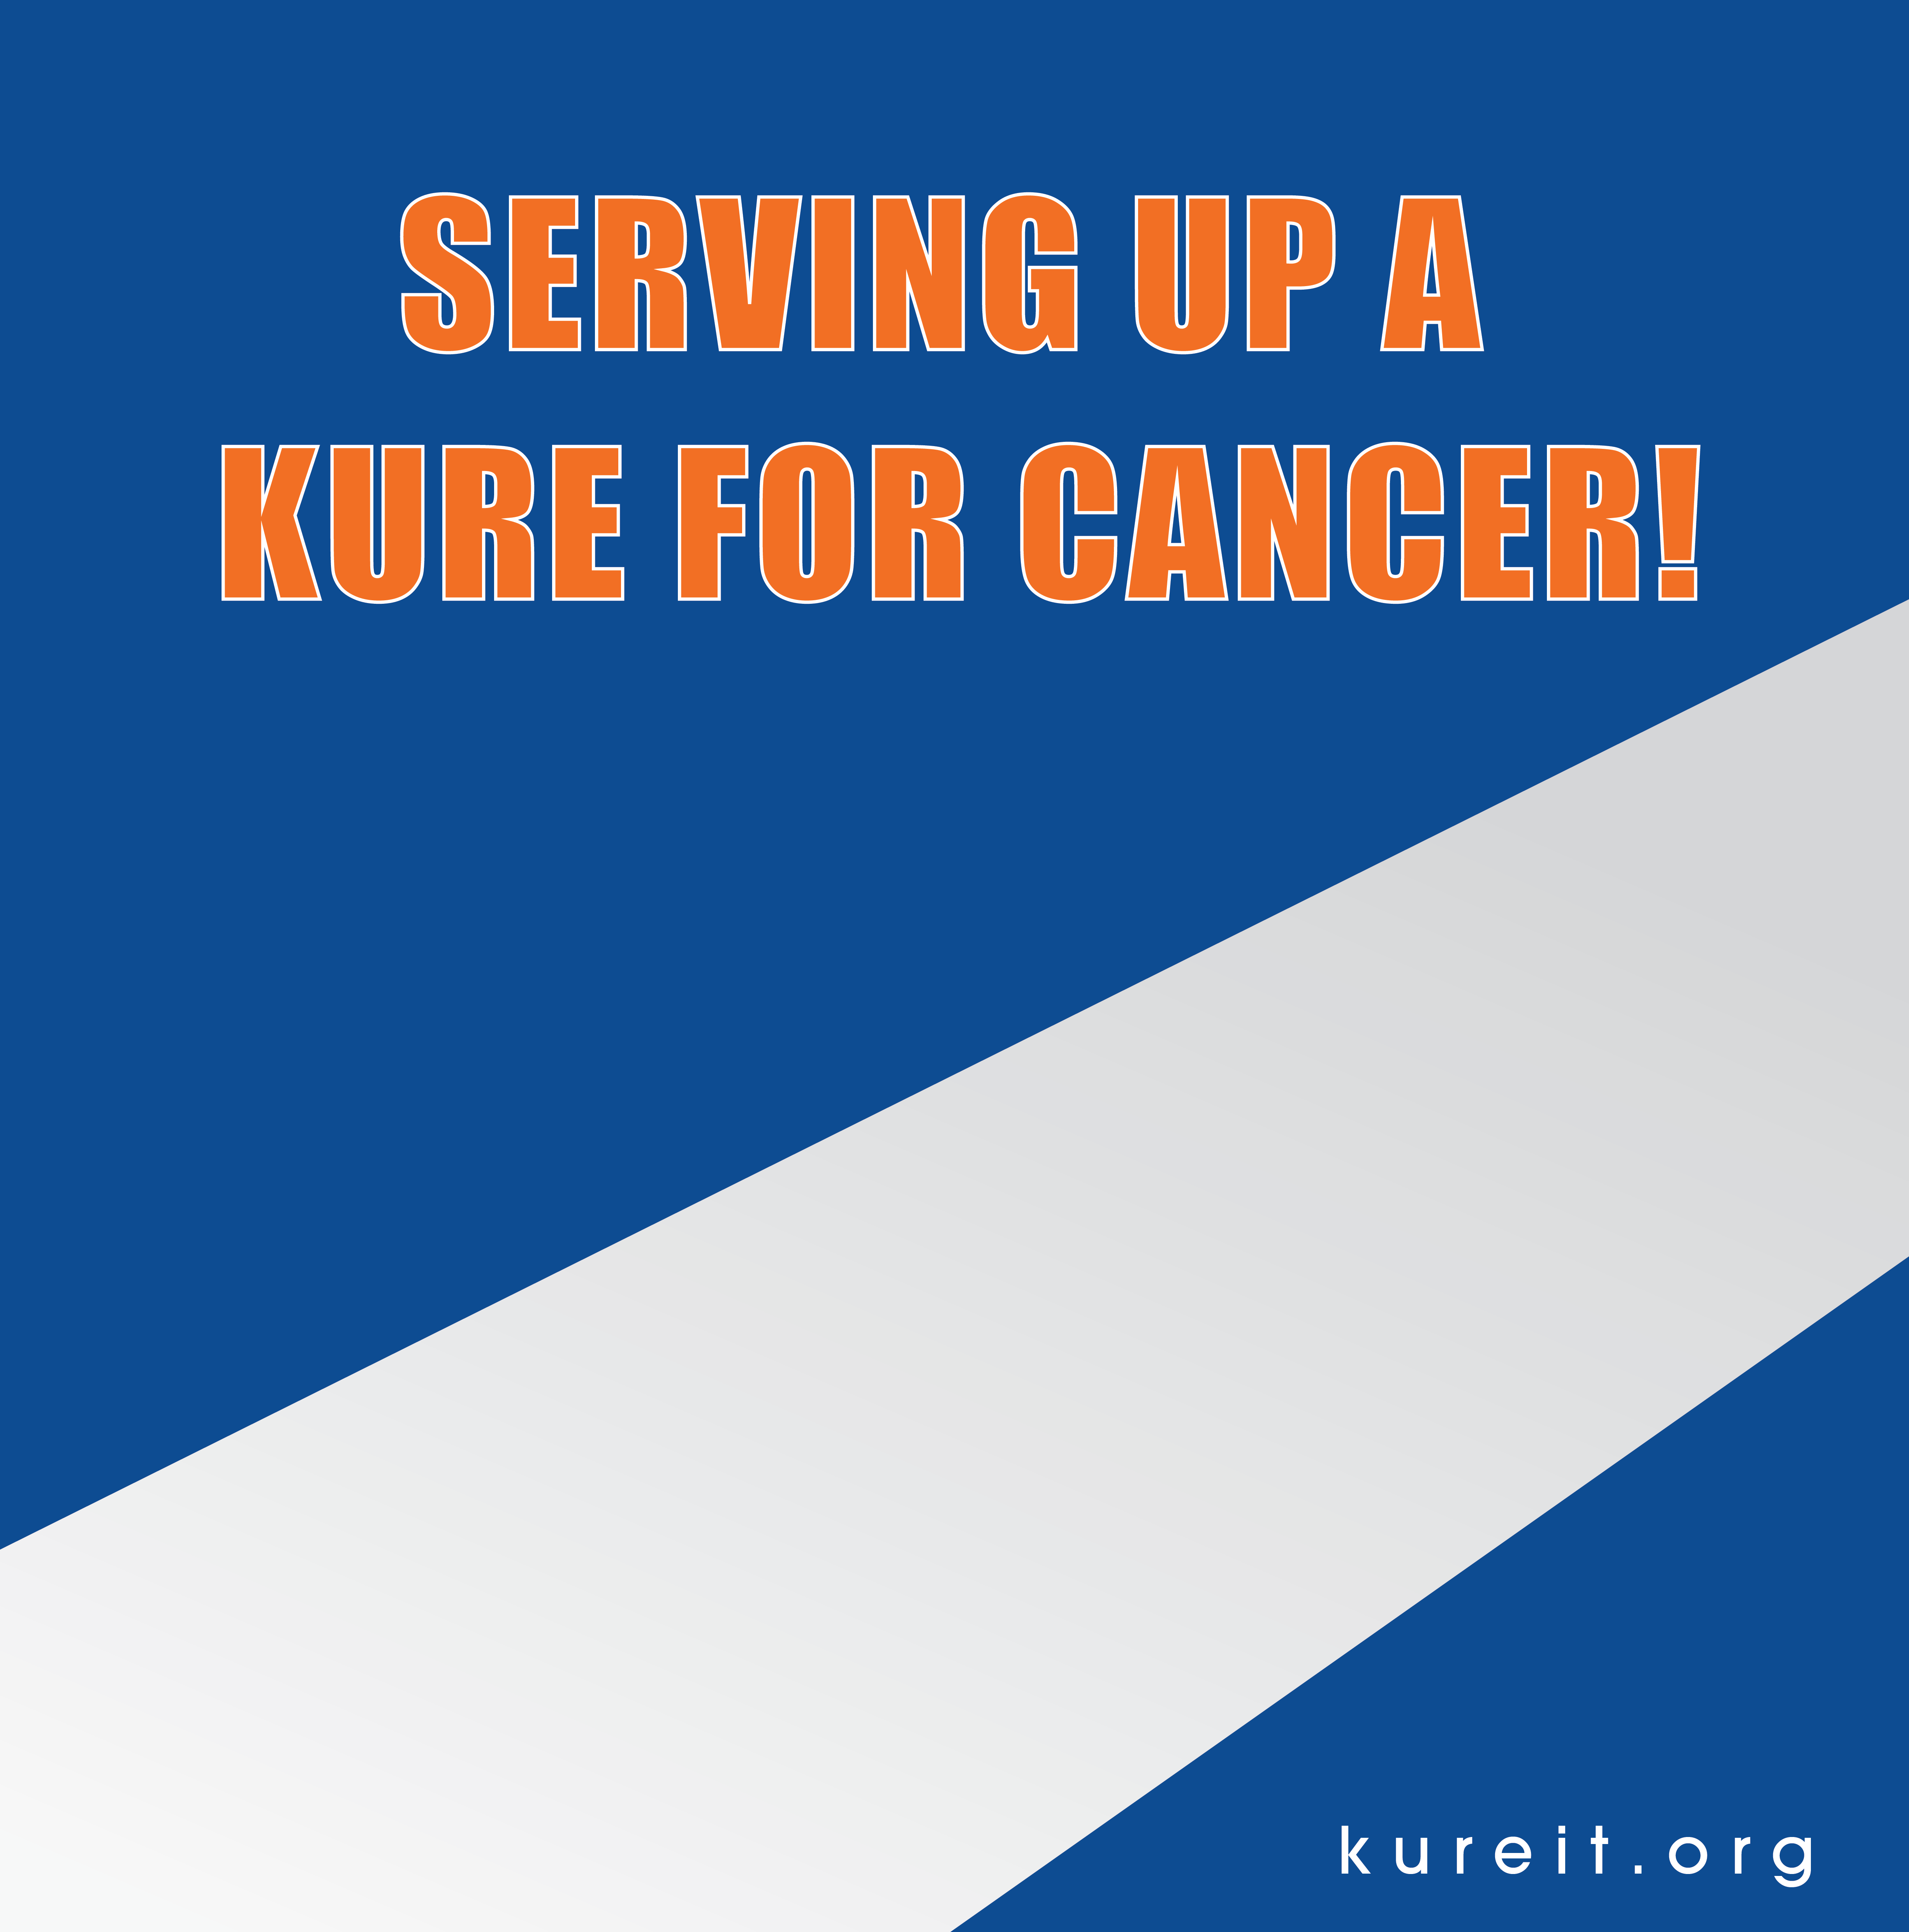 Game On For A Kure! Photo